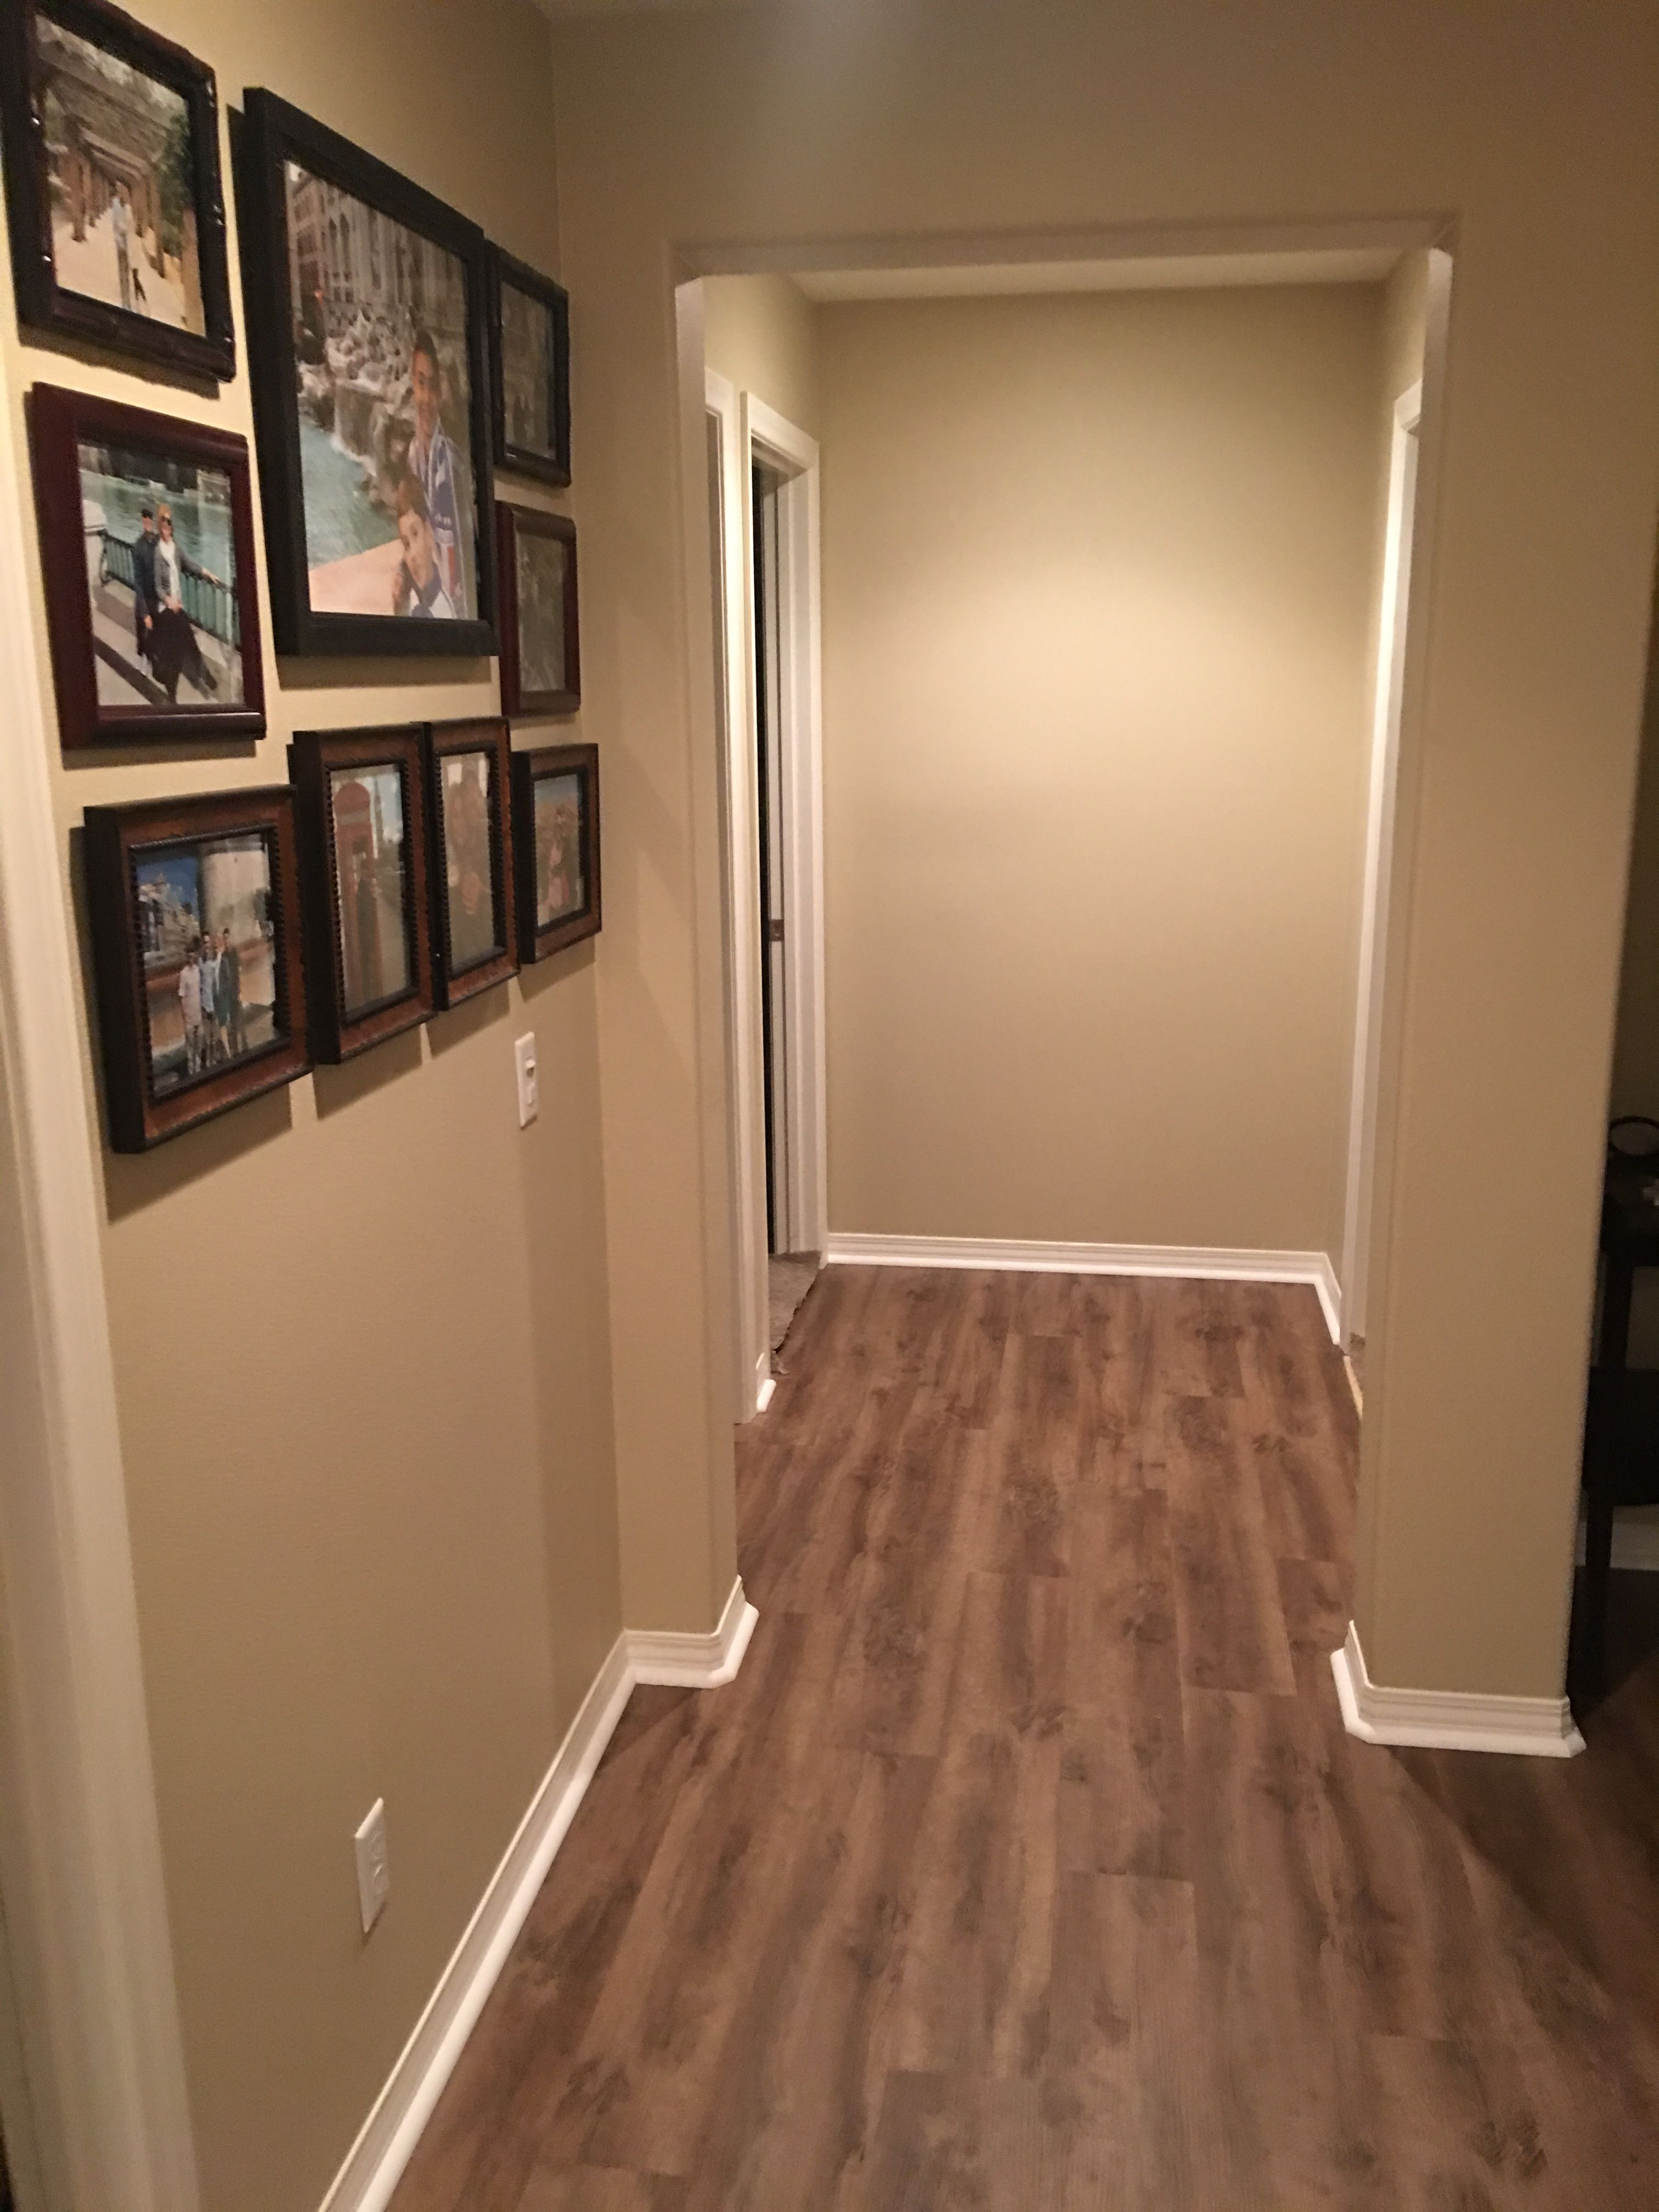 Luxury Vinyl Plank Flooring In The Upstairs Hallway Leading To Kids Bedrooms So Much Cleaner Bedroom Flooring Luxury Vinyl Plank Flooring Flooring